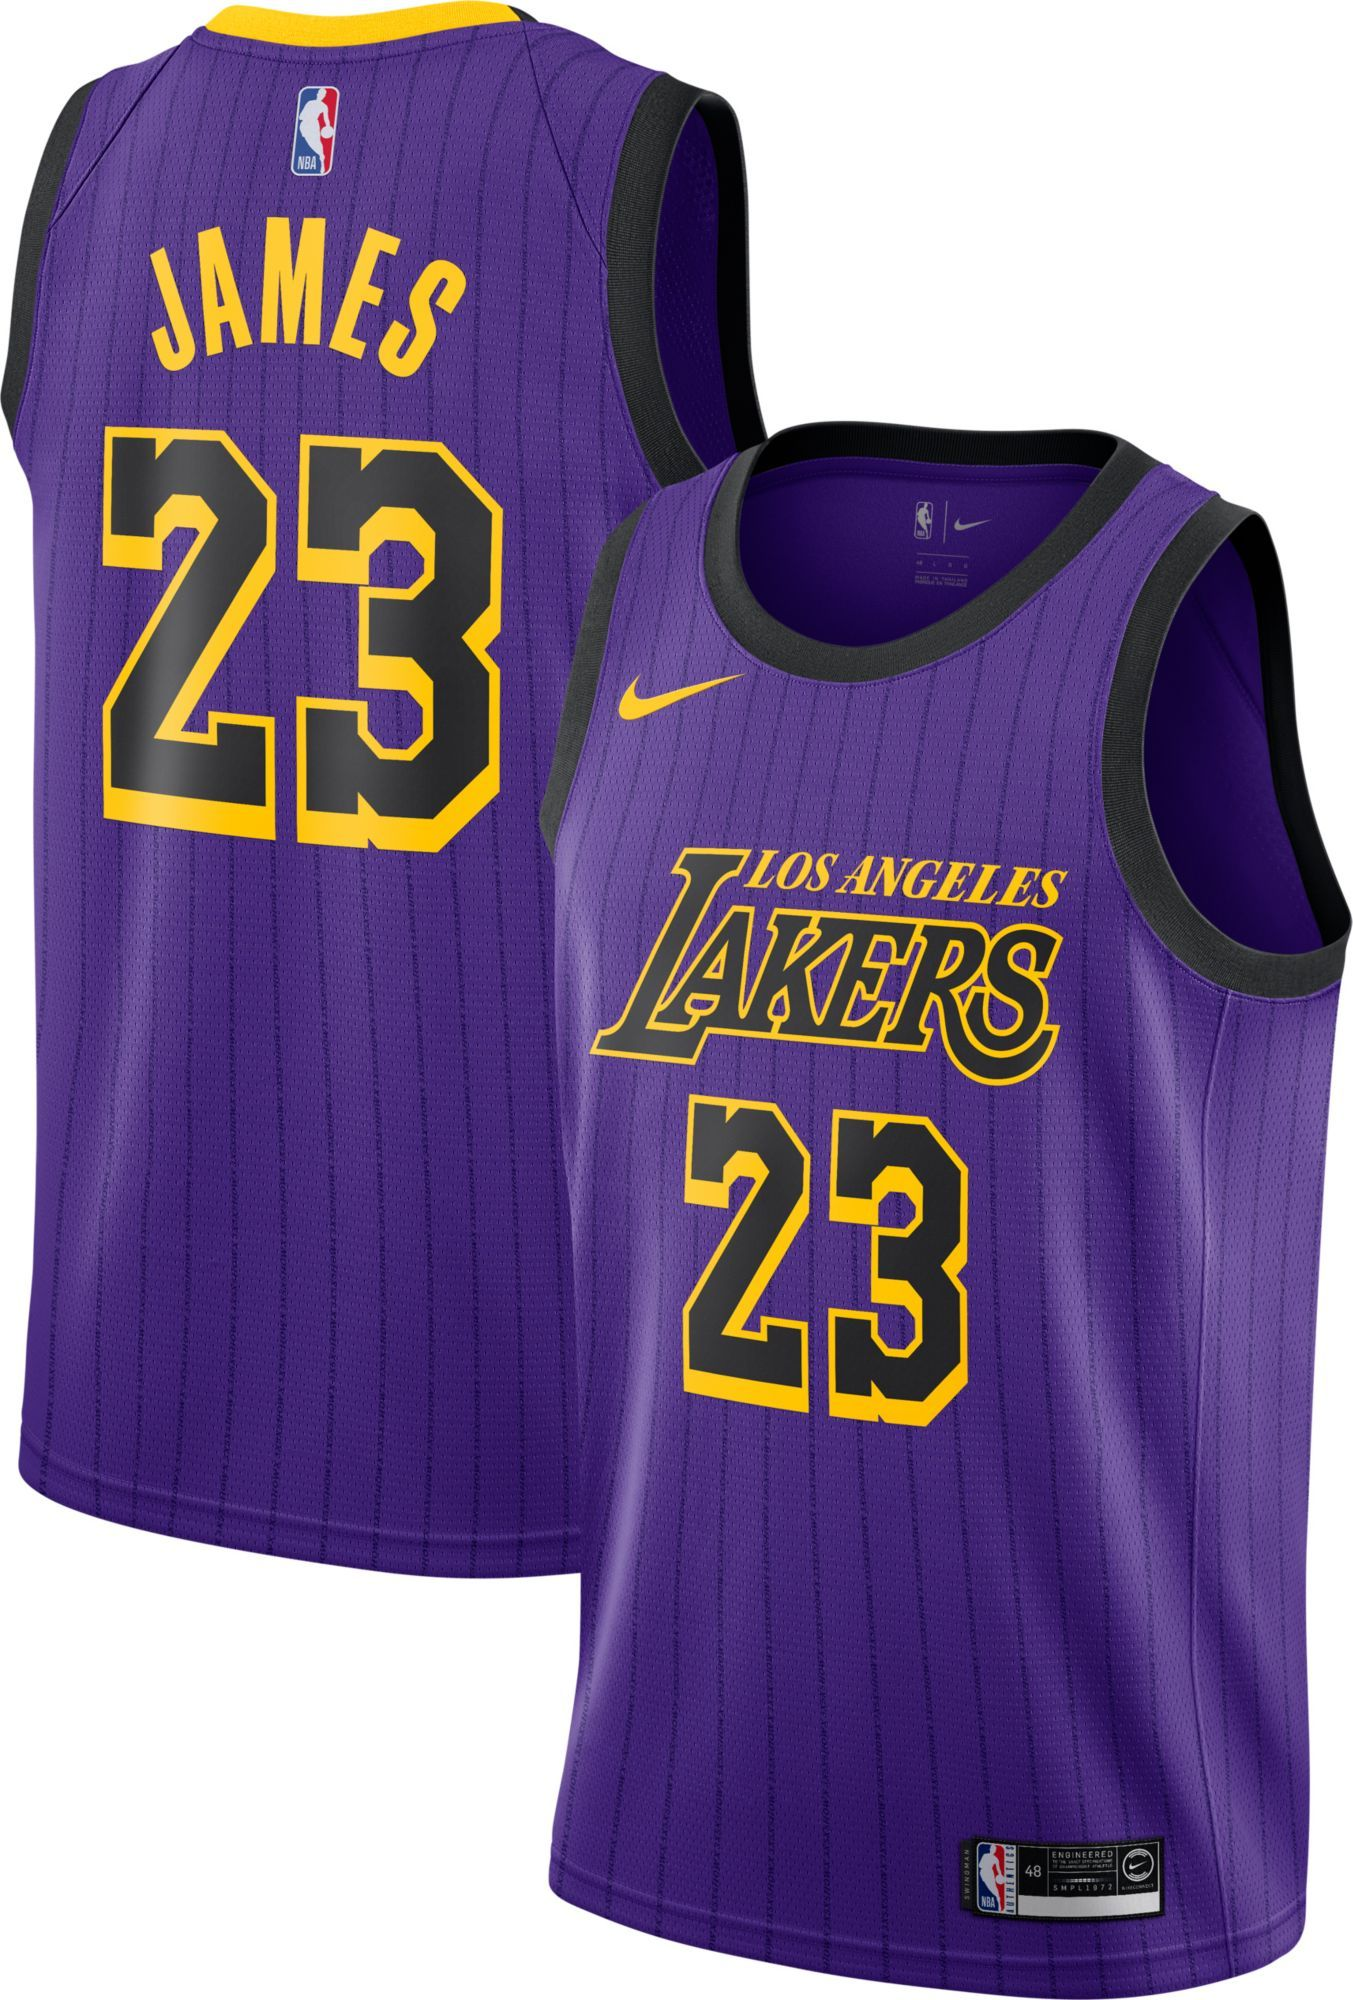 buy popular 1a3c5 dc7ac Nike Men's Los Angeles Lakers LeBron James Dri-FIT City ...